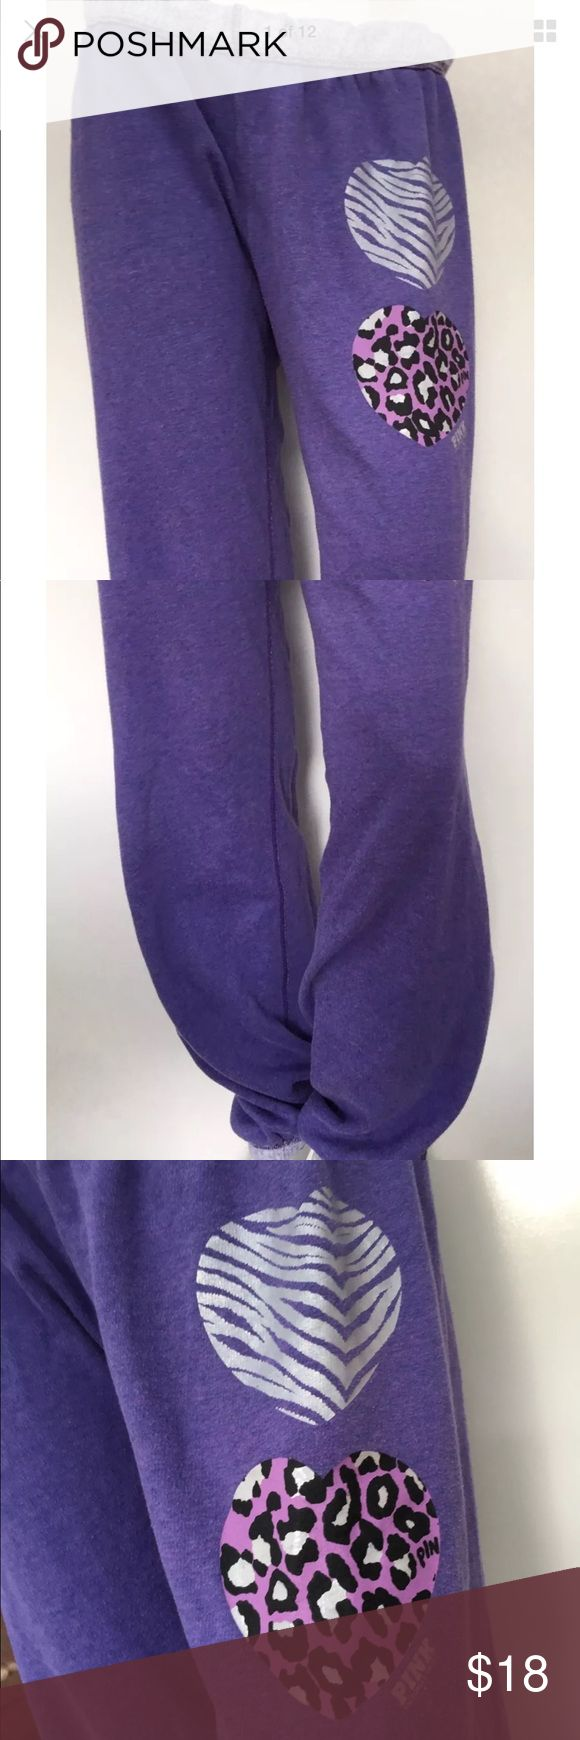 VS Love Pink Purple Sweatpants M Animal Print Pre-Owned Victoria Secret Love Pink Graphic Purple Sweatpants SZ M Animal Print HeartWomen Baggy Gym Sleepware Causal Full Length Online Shopping Female Chi  Measurements: 41 1/2 inches (From waist to bottom of pants) 24 1/2 inches (From side of hip area to other side of hip area) PINK Victoria's Secret Pants